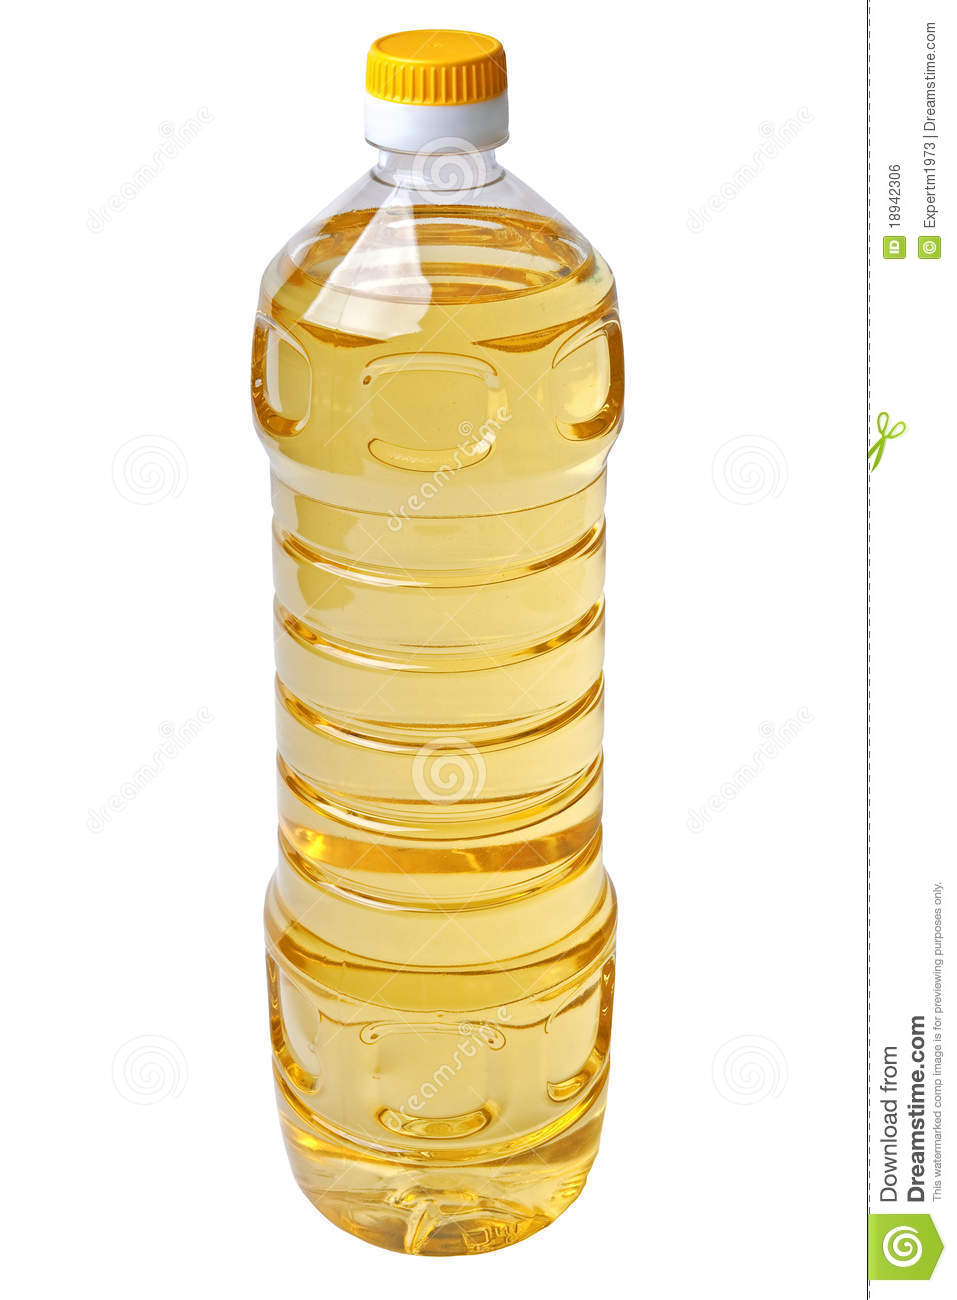 Isolated Liter Full Bottle Of Vegetable Oil